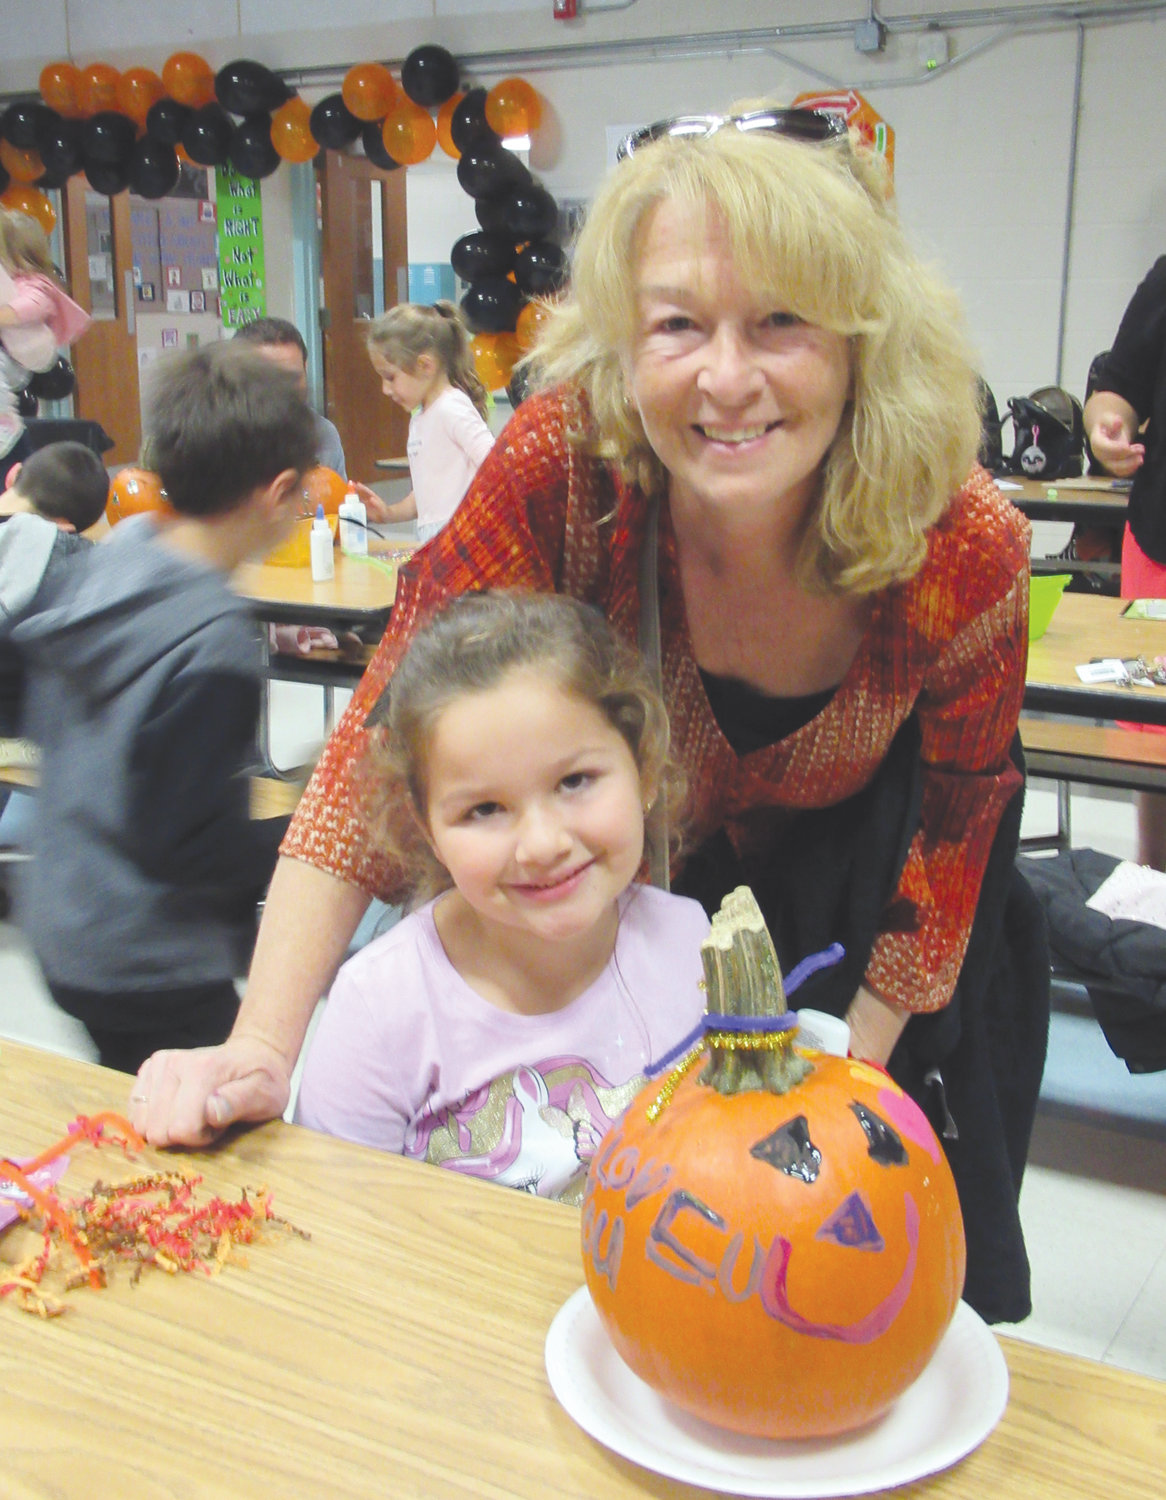 HAVING FUN: Lillyana Matarese and Cindy Matarese had on their happy faces during the ECC's annual Pumpkin Painting Night.